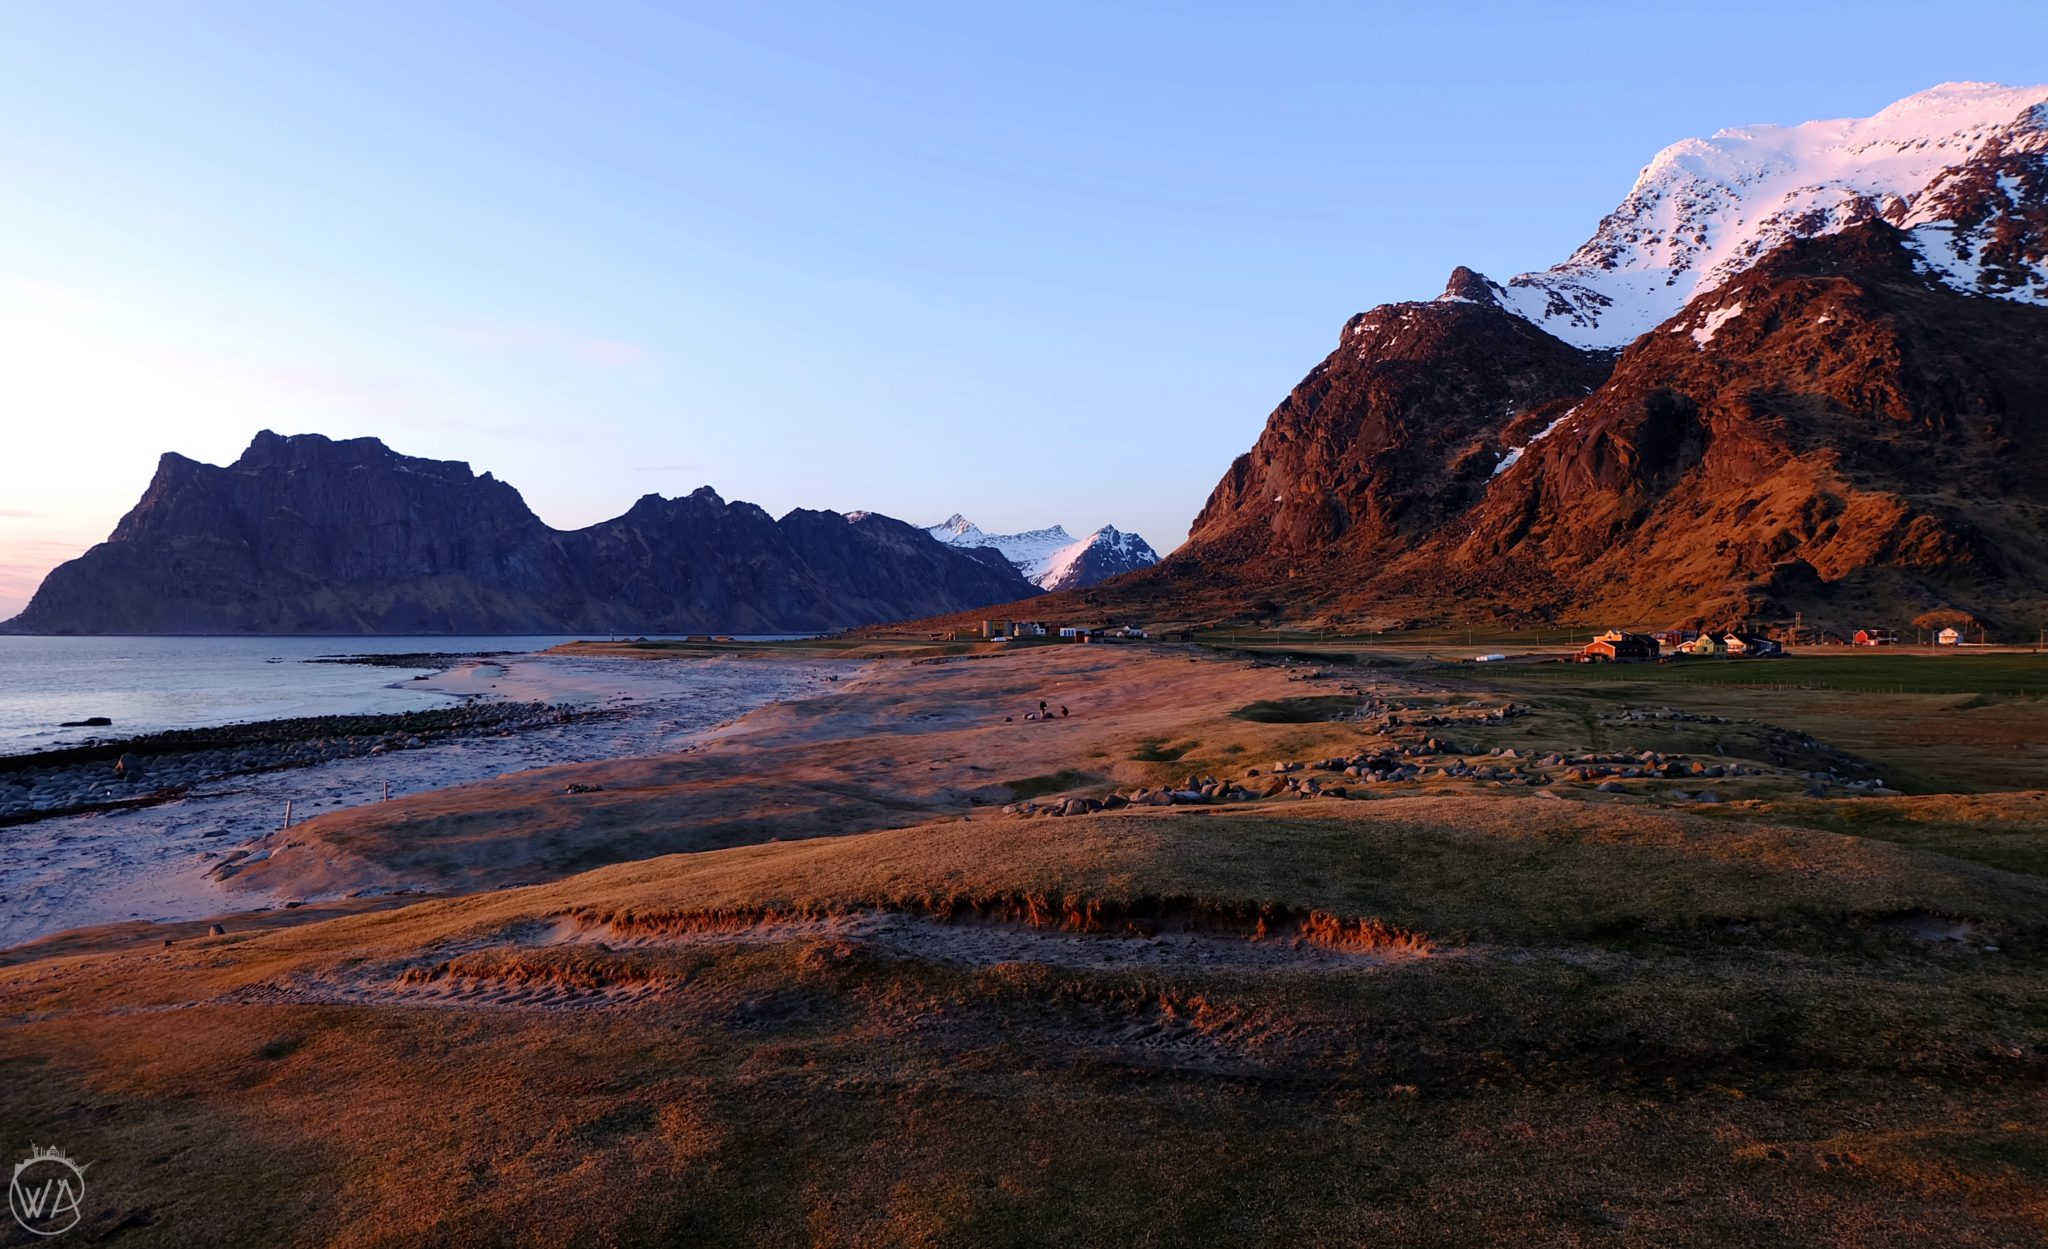 Lofoten islands Norway, one of the non touristy holiday destinations to escape the crowds